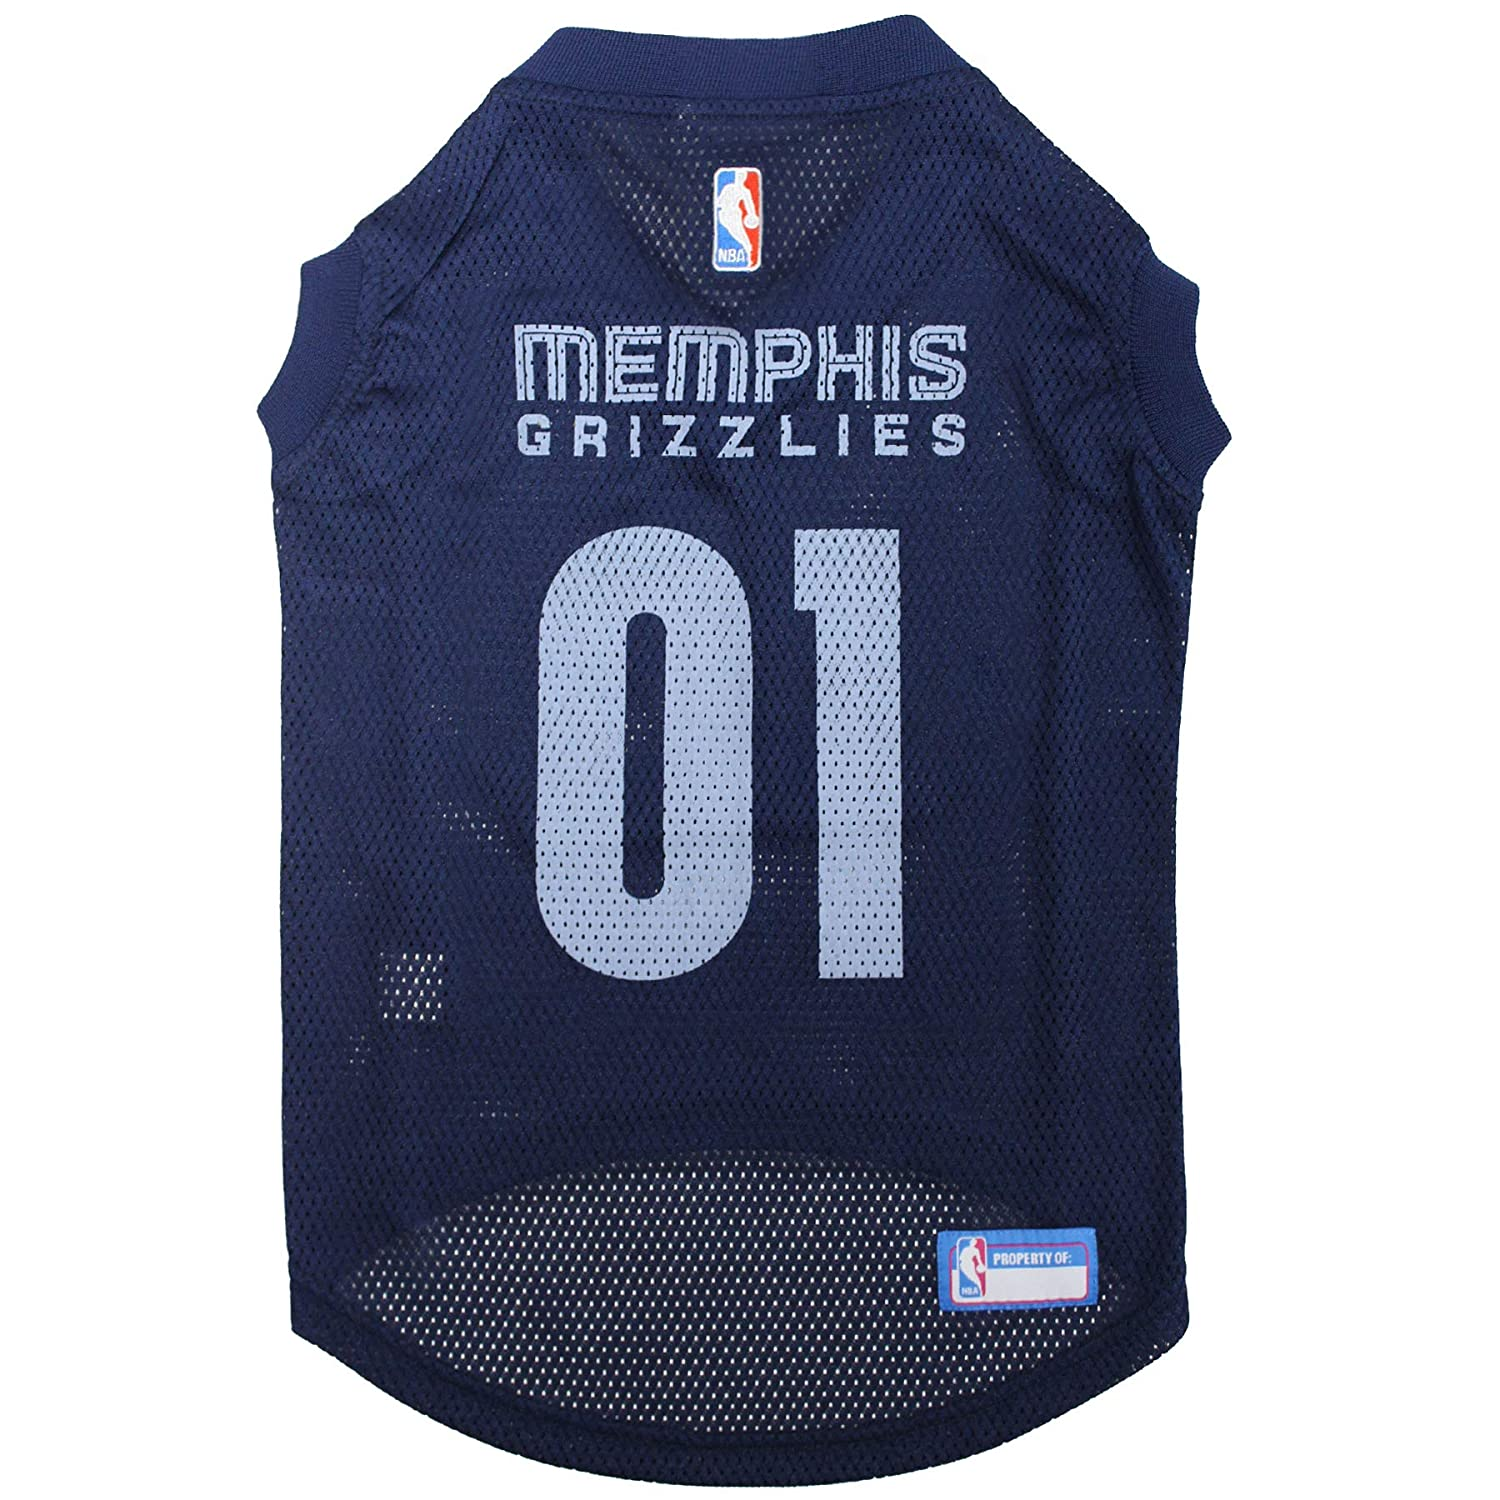 NBA PET Apparel. - Licensed Jerseys for Dogs   Cats Available in 25  Basketball Teams   5 Sizes Cute pet Clothing for All Sports Fans. Best NBA  Dog Gear 346eaf945